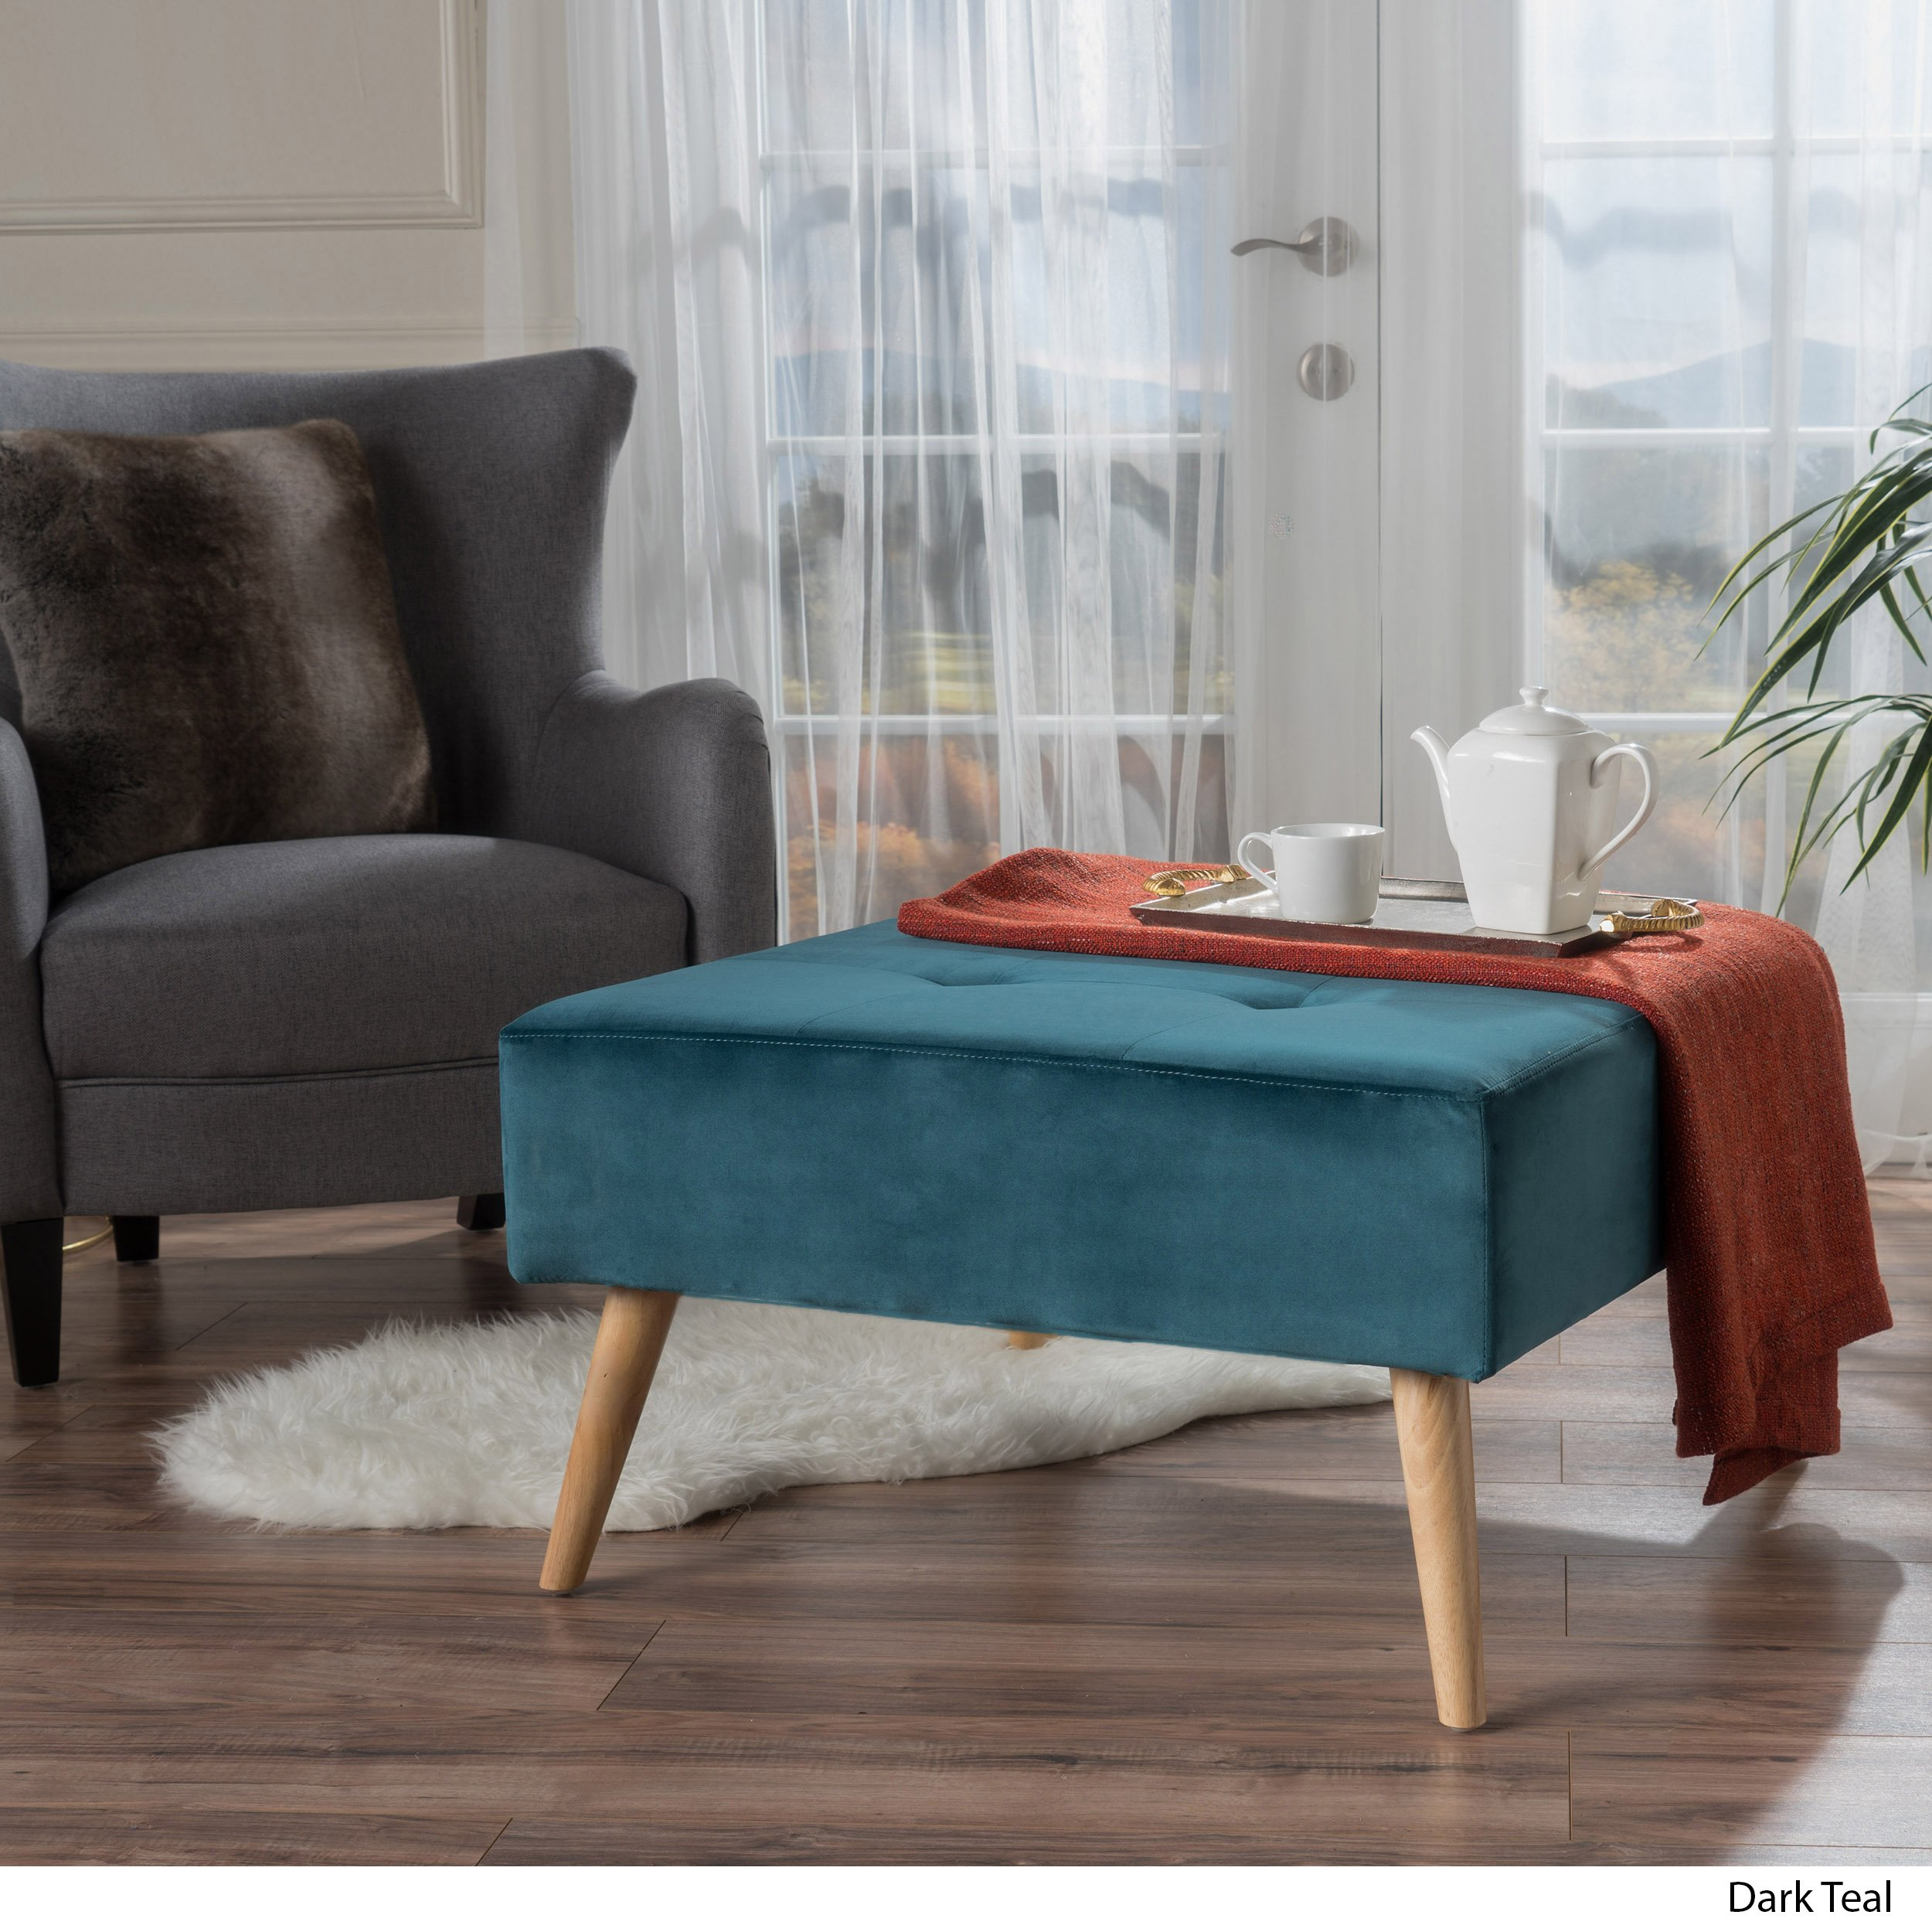 Cheap Teal Velvet Sofa find Teal Velvet Sofa deals on line at